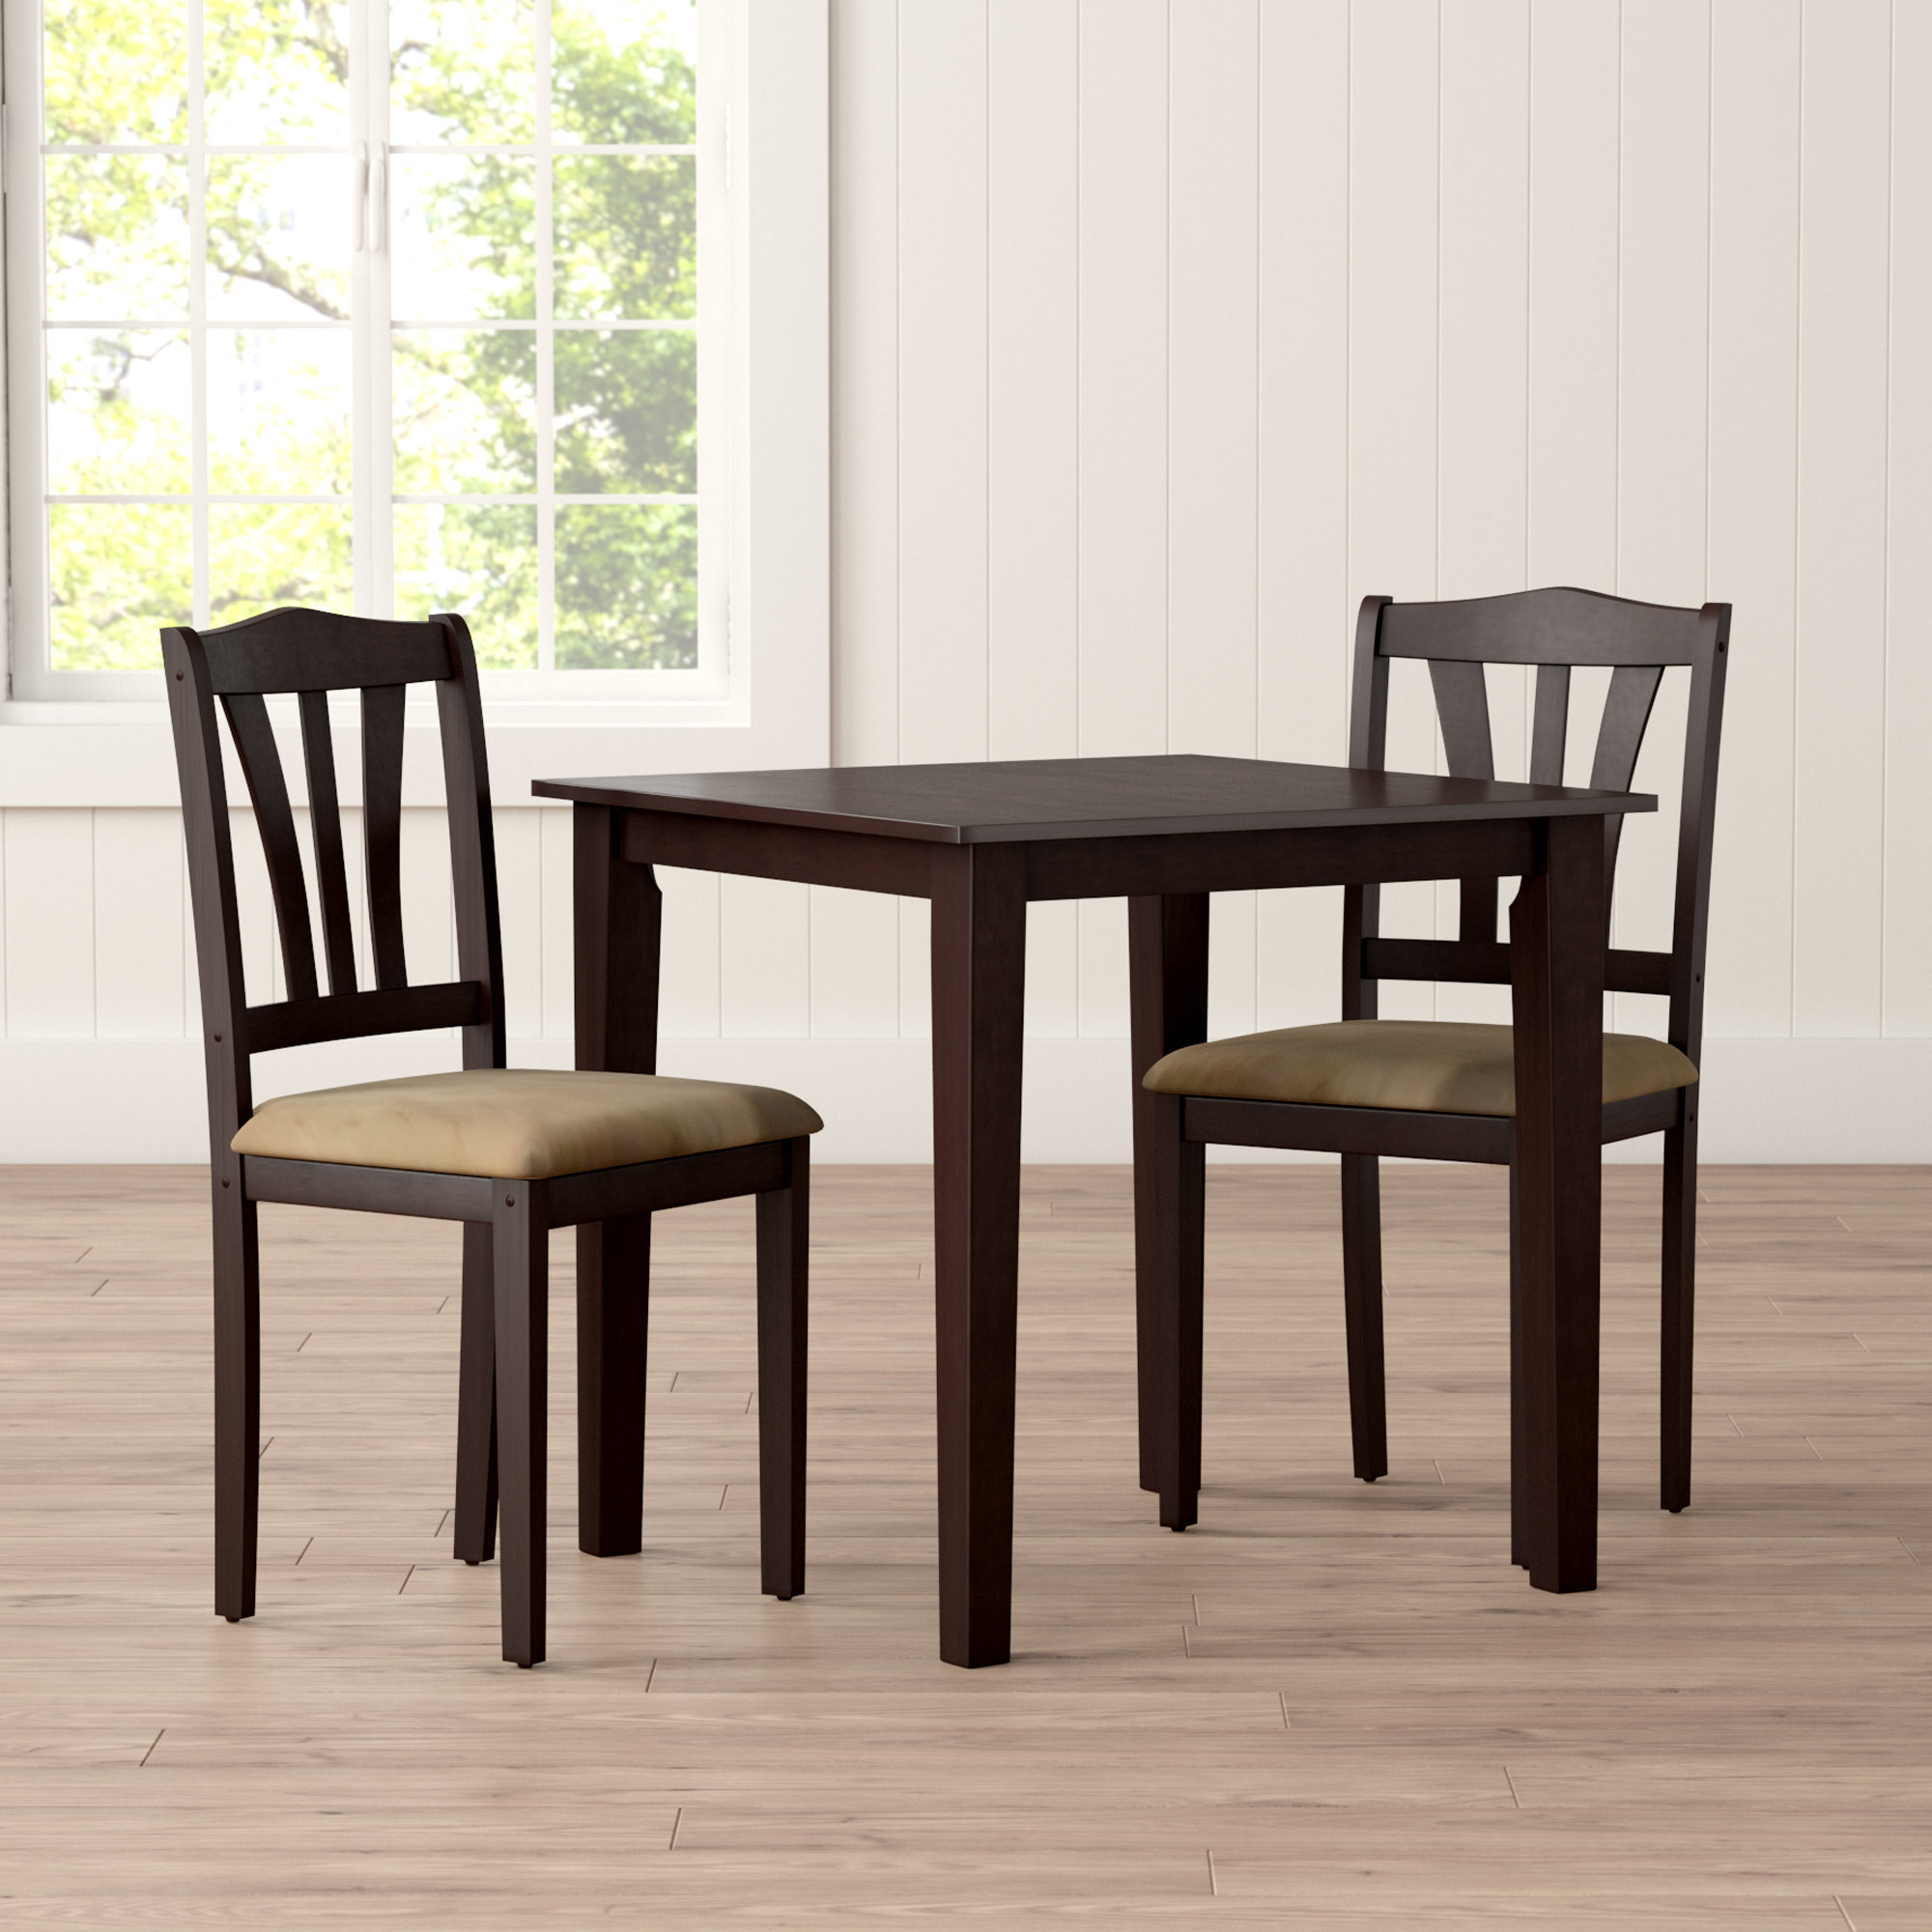 Wayfair Throughout Ligon 3 Piece Breakfast Nook Dining Sets (View 9 of 20)